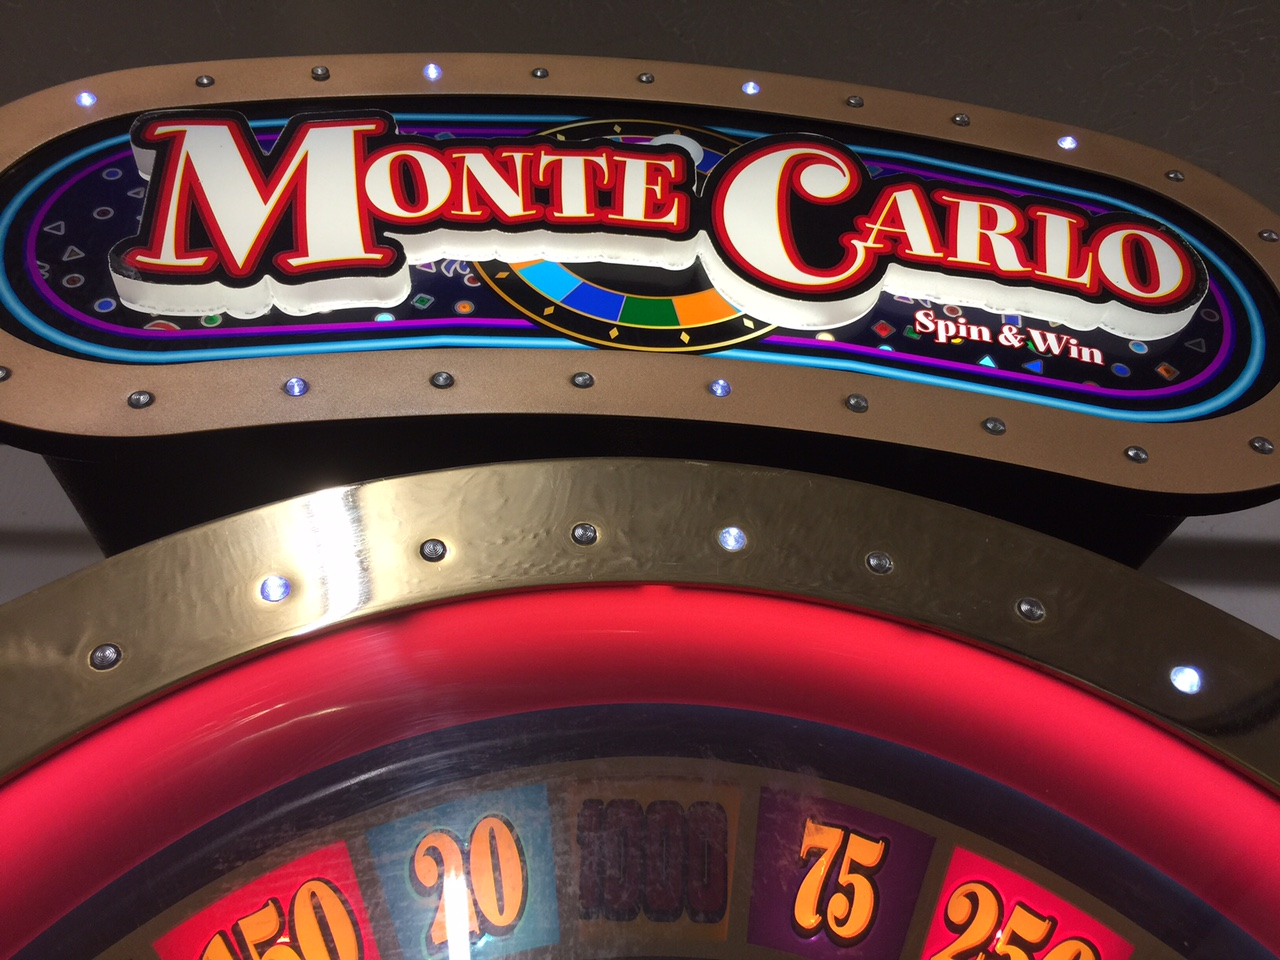 double diamond strike slot machine payouts in florida